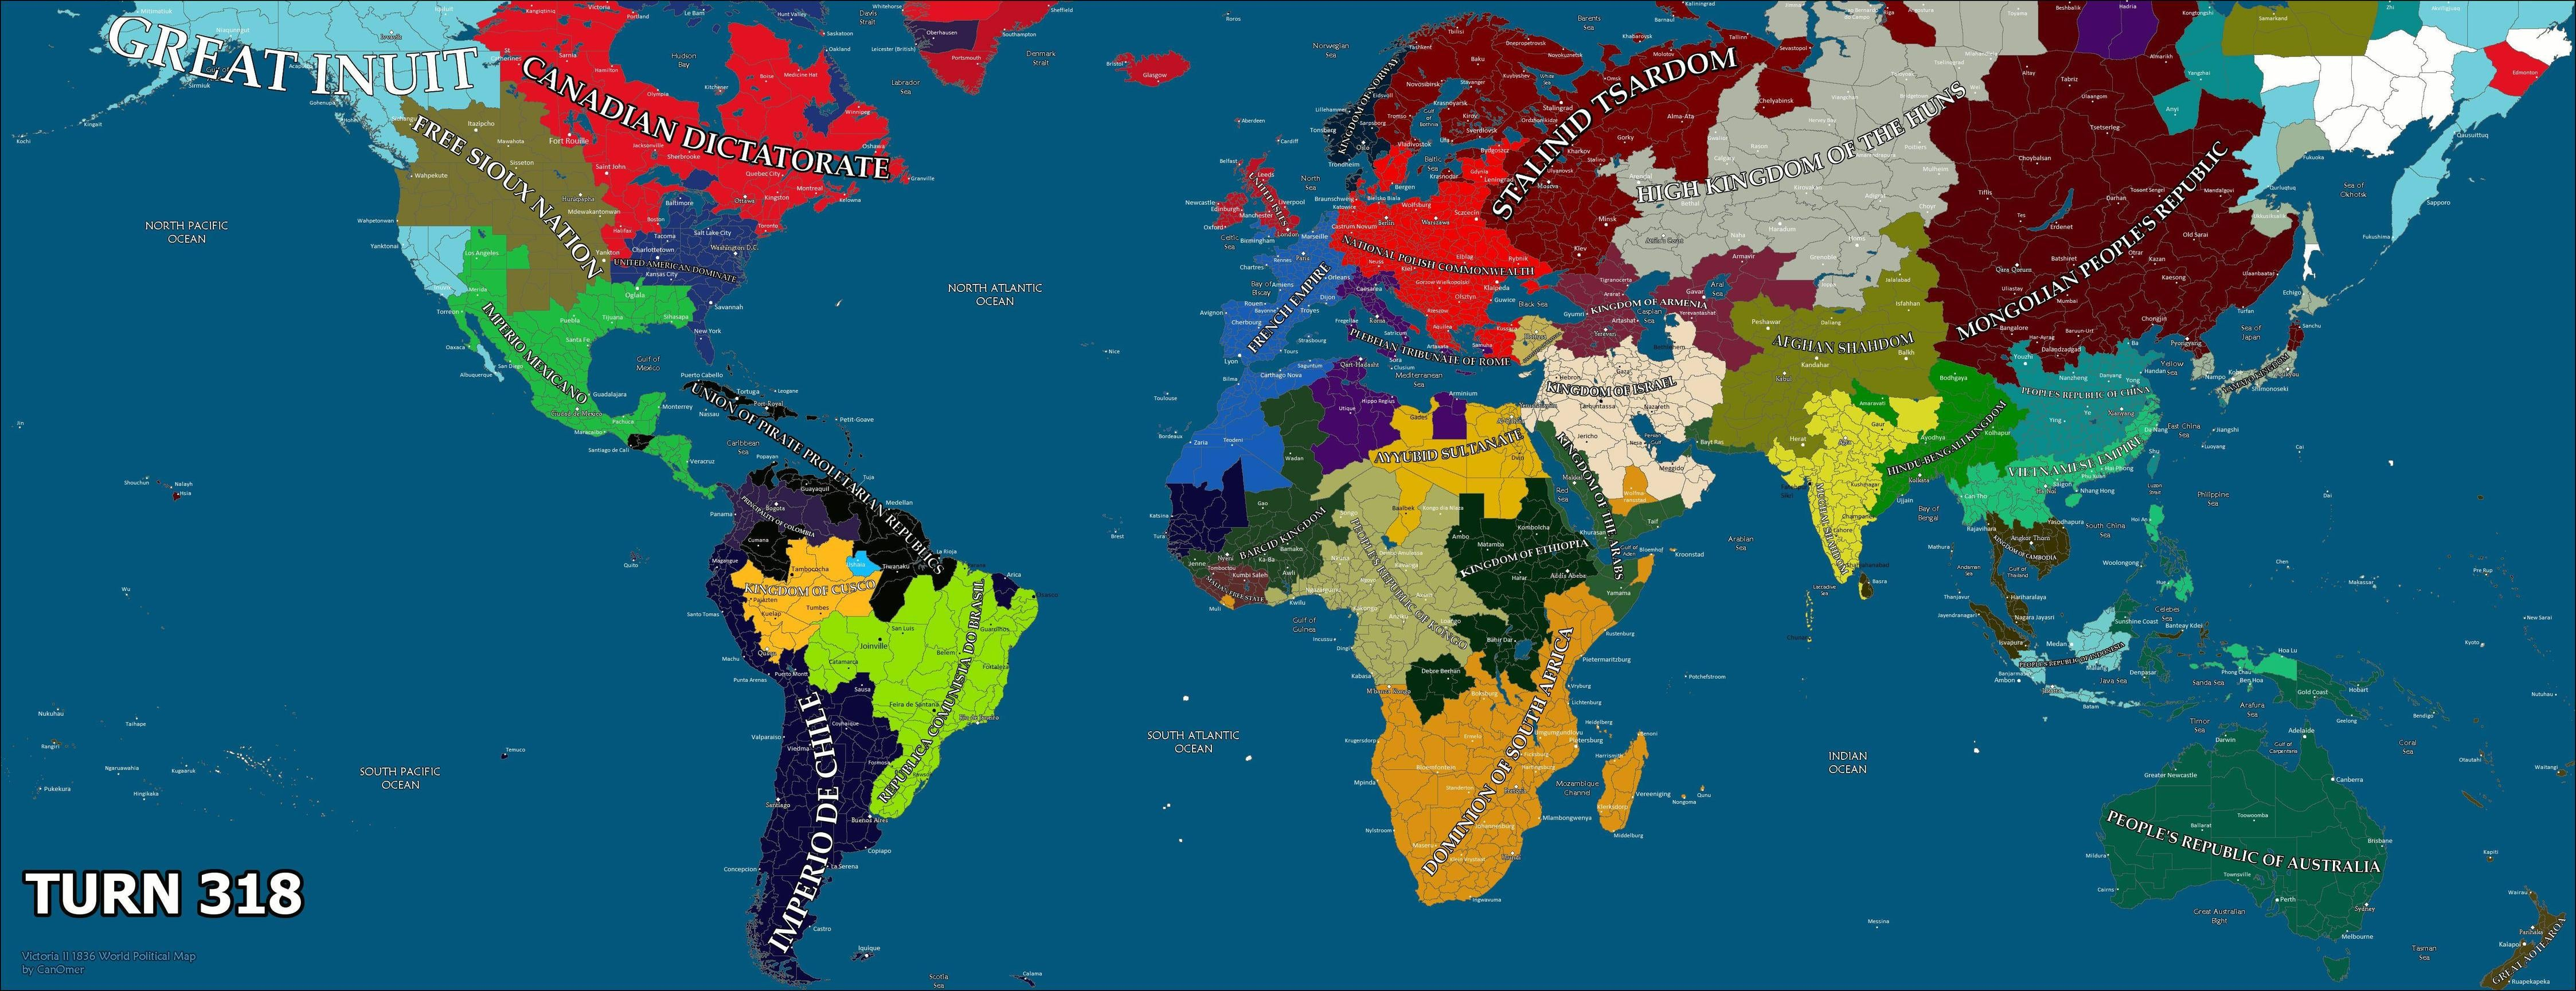 Civ V's 44-Player War Has Overrun The Planet, Prepares For Doomsday